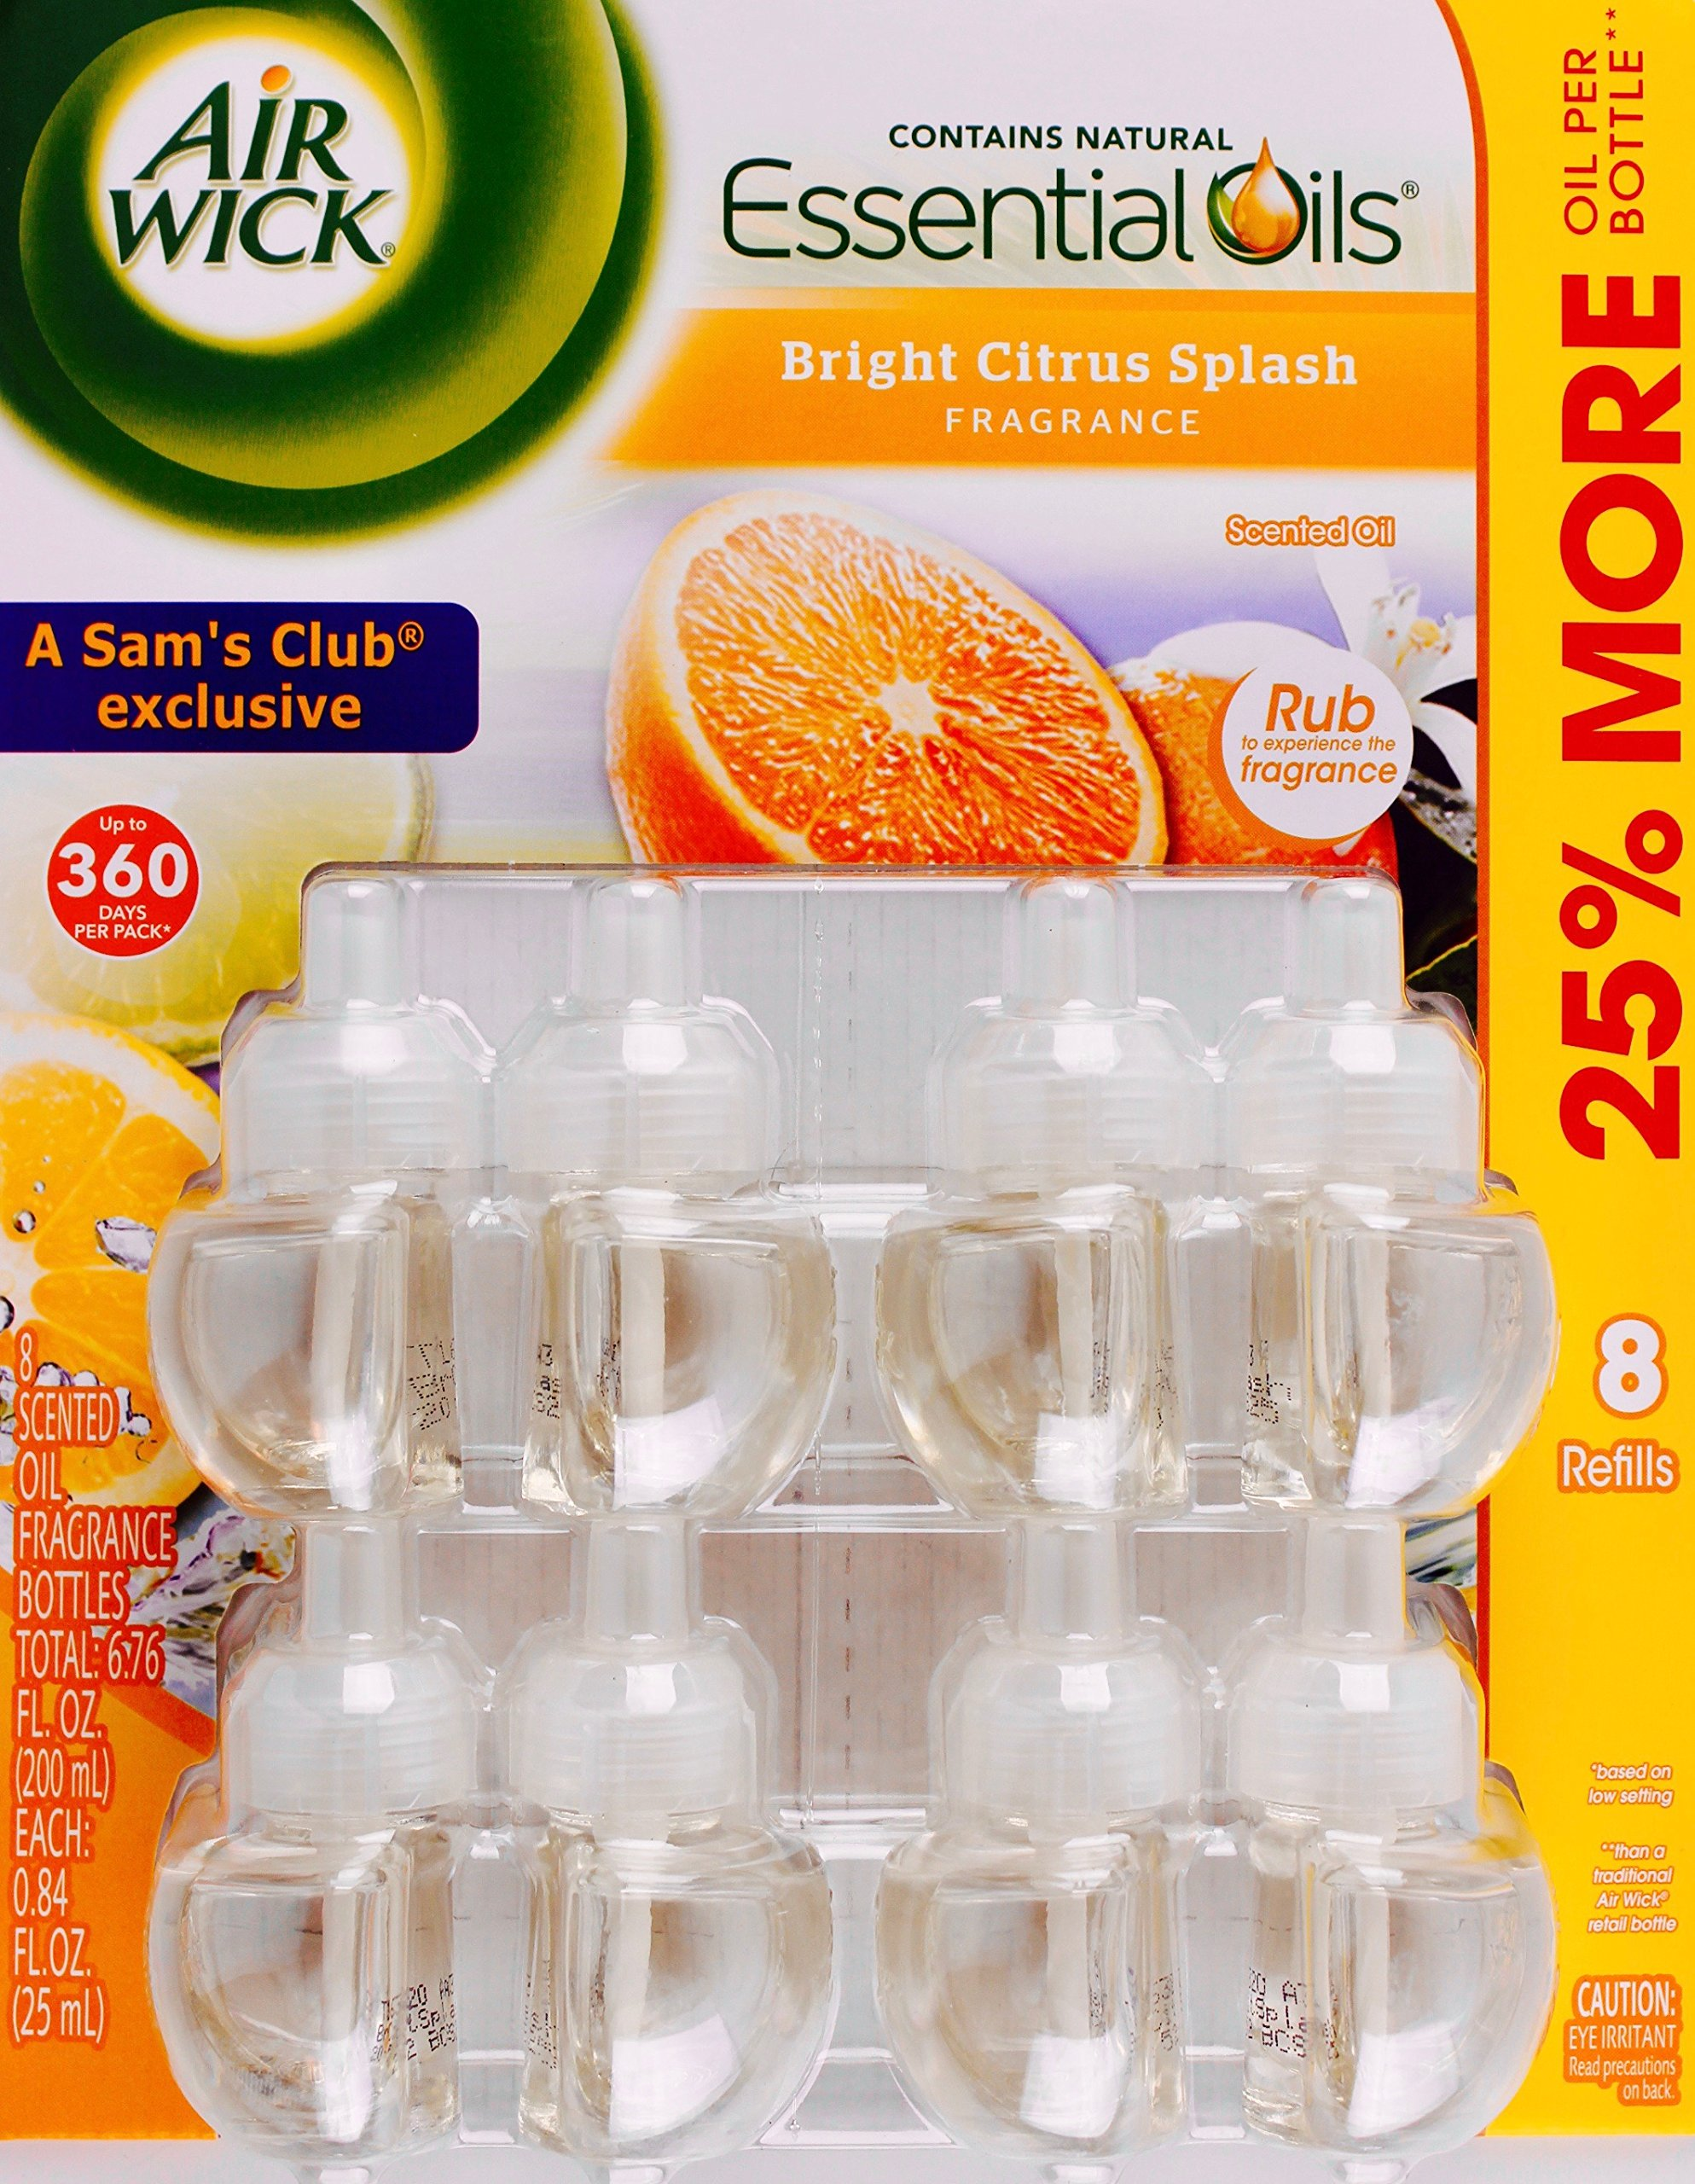 Air Wick Bright Citrus Splash Essential Scented Oils, 8 Refill Bottles